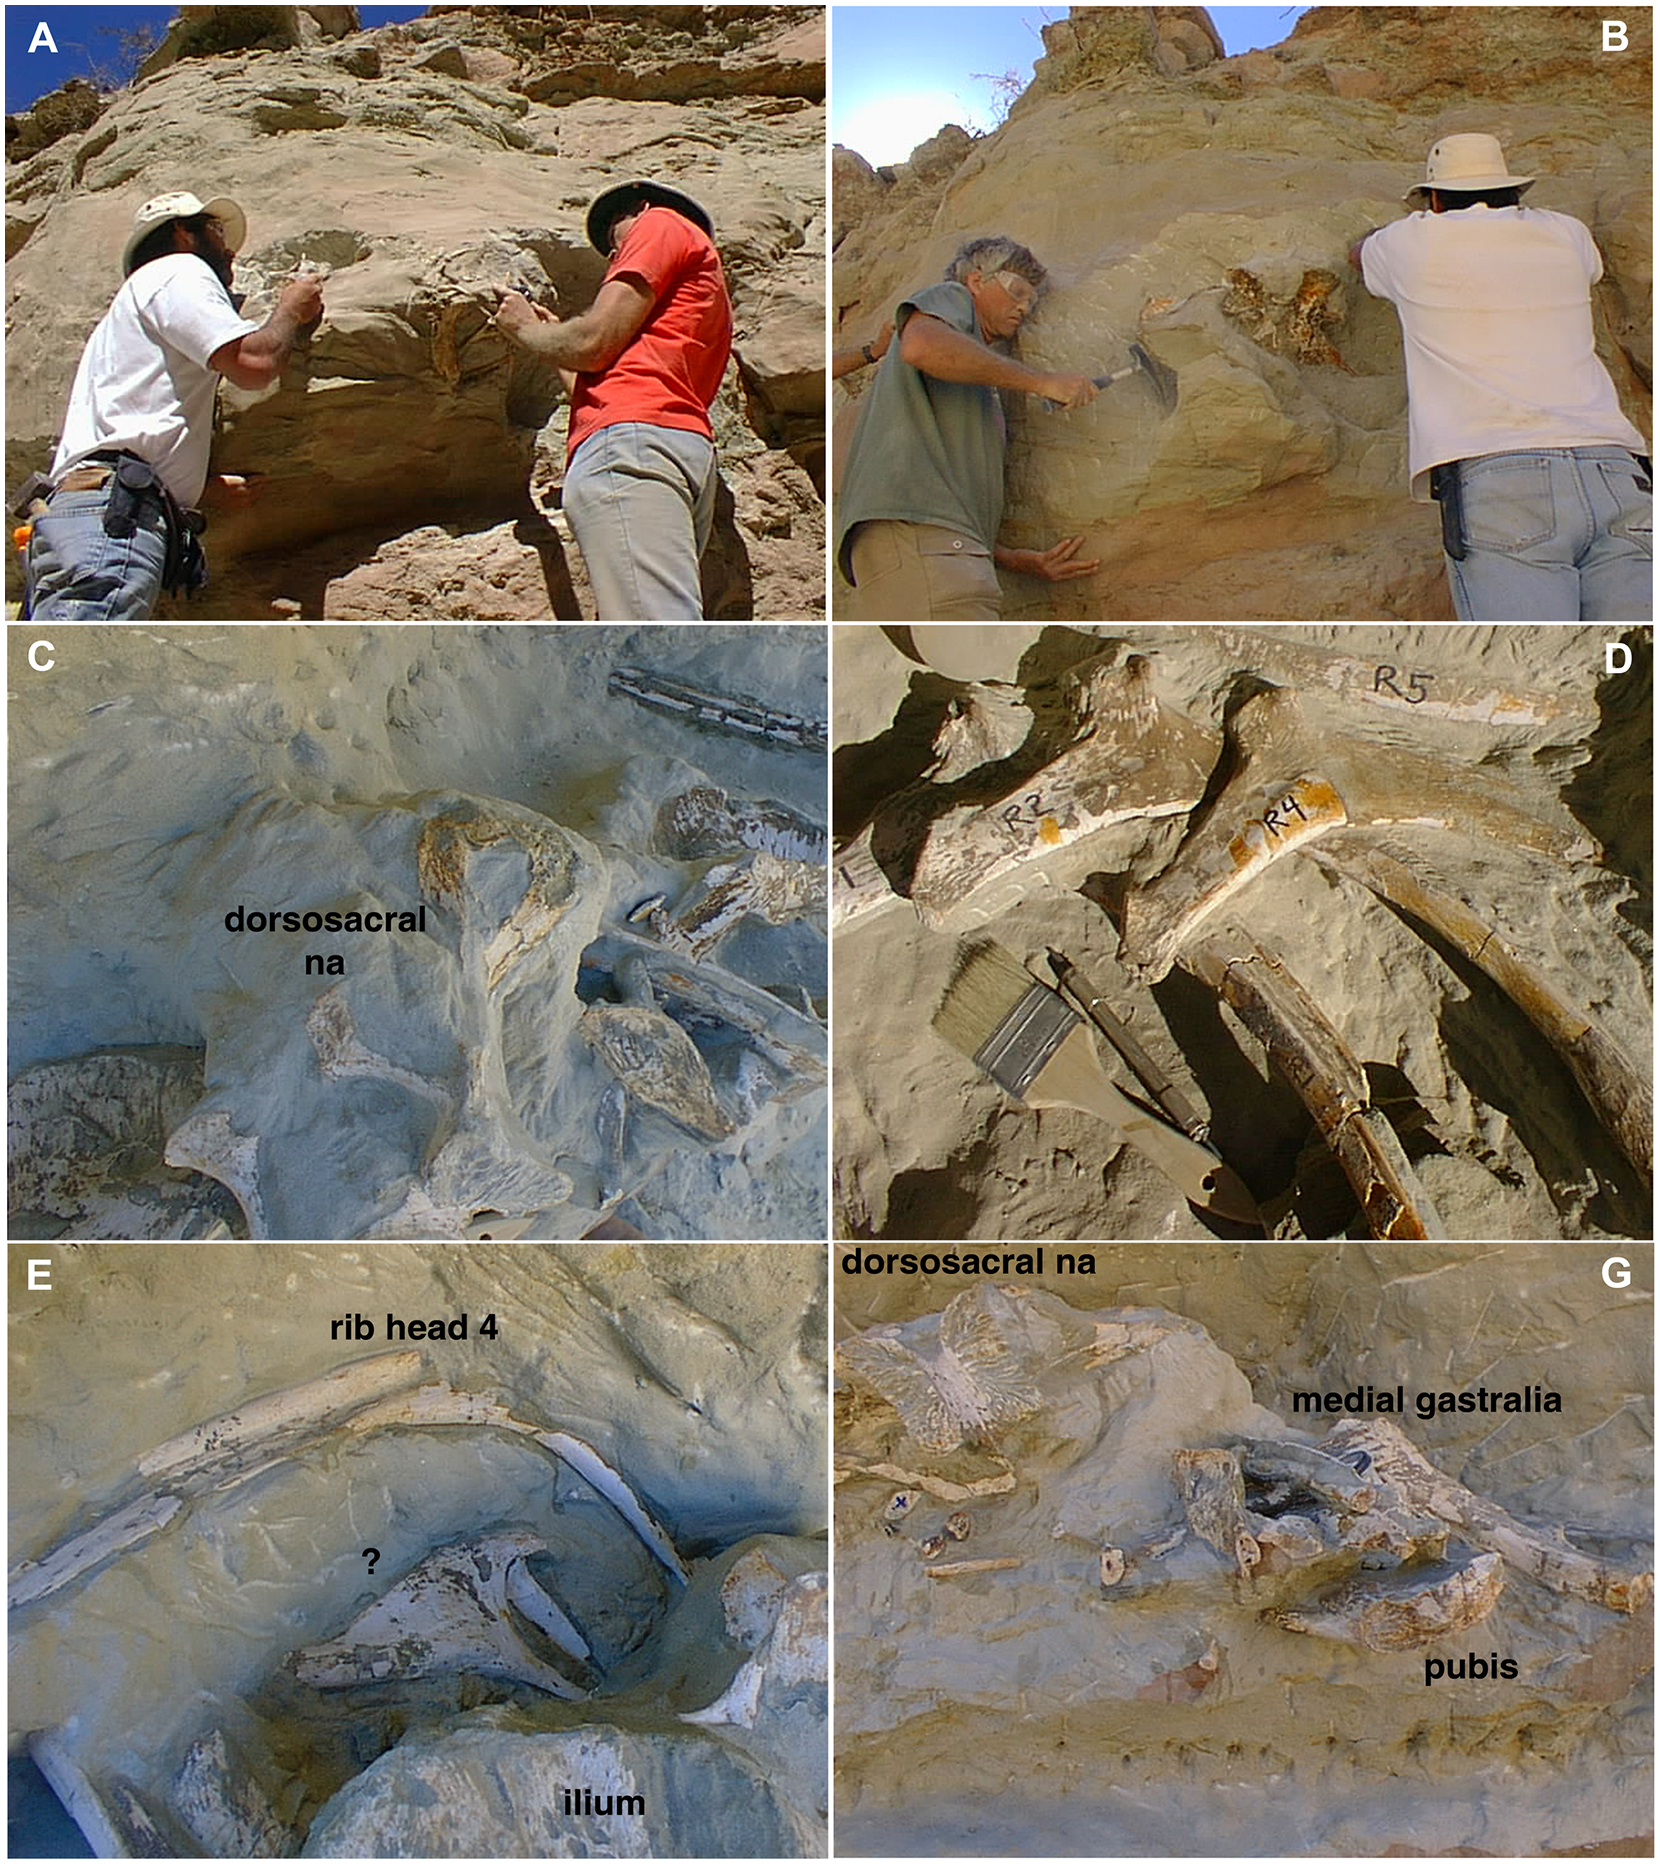 Field photos of the excavation of MCF-PVPH-411 (Murusraptor barrosaensis). A and B, the authors excavating the right ilium. C-F, different appendicular elements in their original burial positions before collection